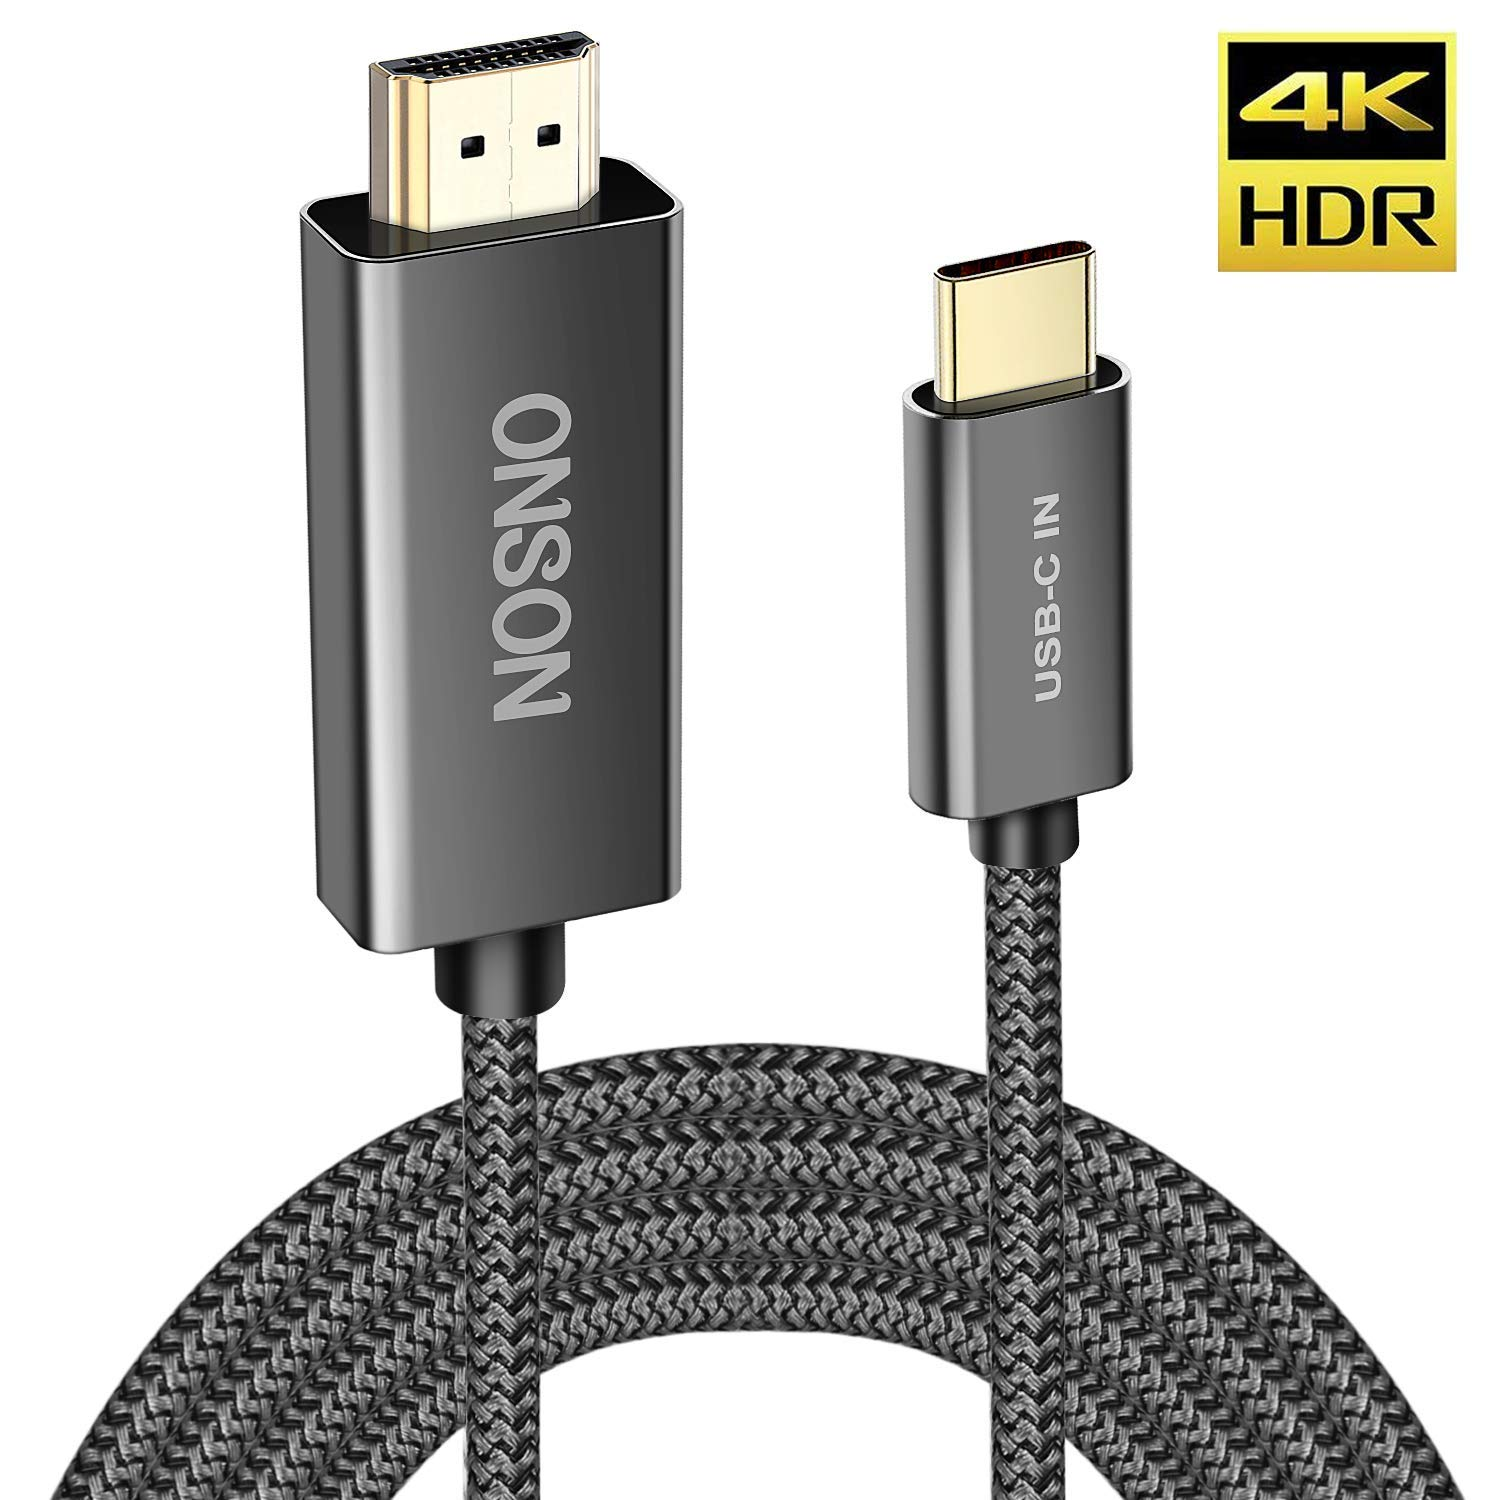 USB C to HDMI Cable, FT USB Type C to HDMI Thunderbolt 3 Compatible 4K Converter Supports up to 60Hz for MacBook Pro 2018/2017,Samsung Galaxy S9/S8, Surface Book 2, Dell XPS 13/15, Pixelbook by CBoner